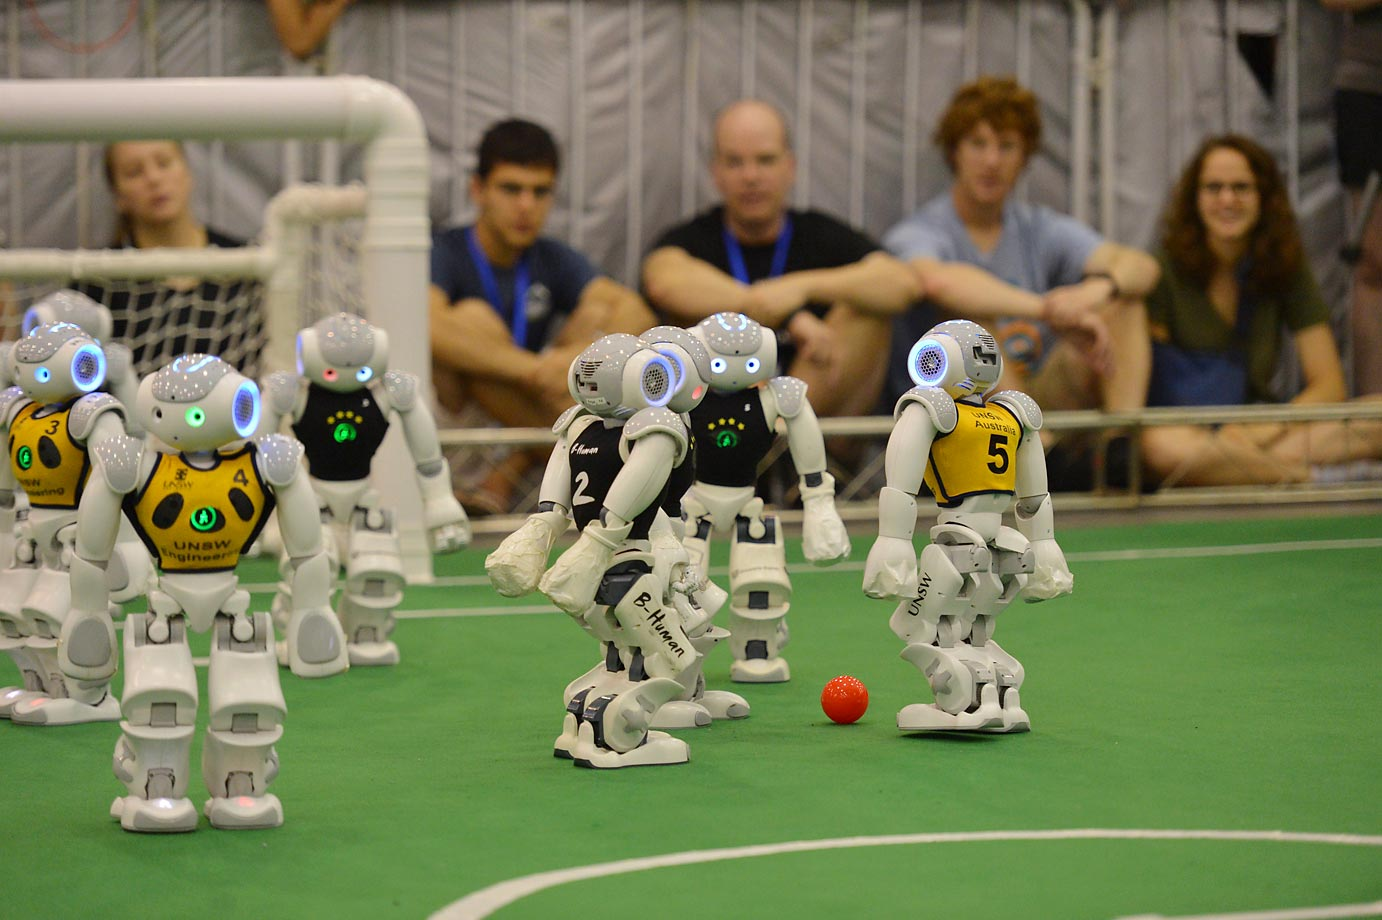 Robots compete in a football match during the RoboCup 2015 in China.